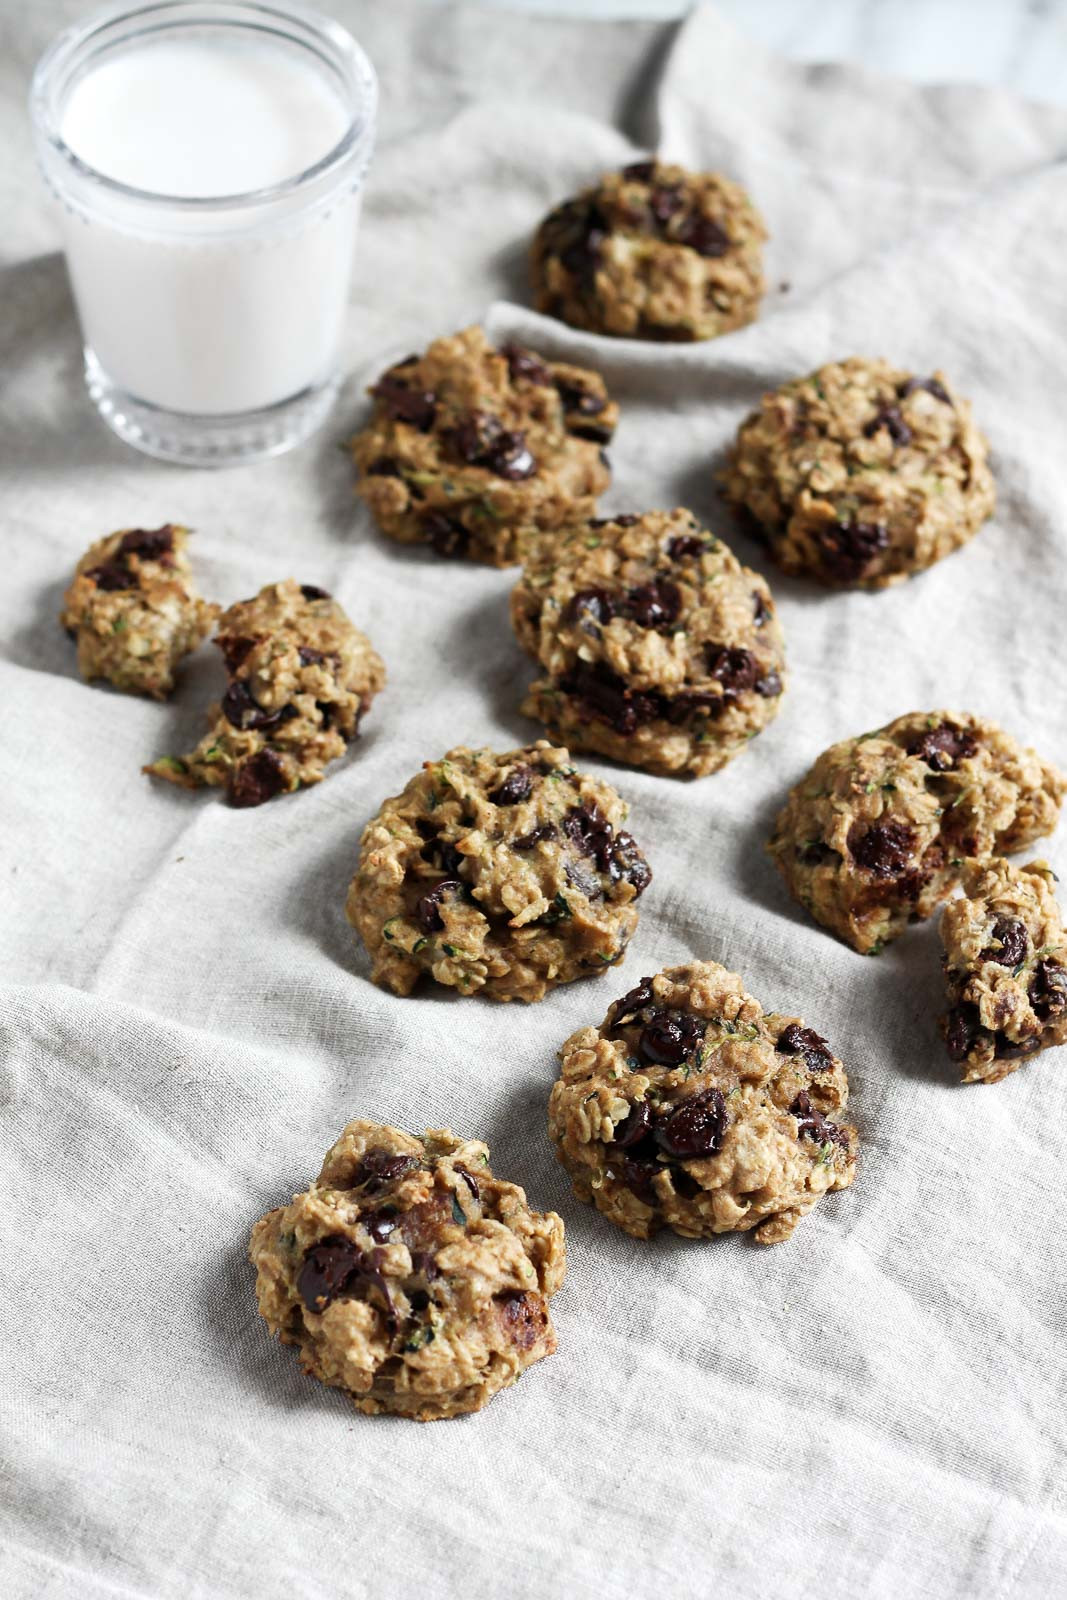 Choc Chip Oatmeal Cookies Healthy  Healthy Chocolate Chip Zucchini Oatmeal Cookies